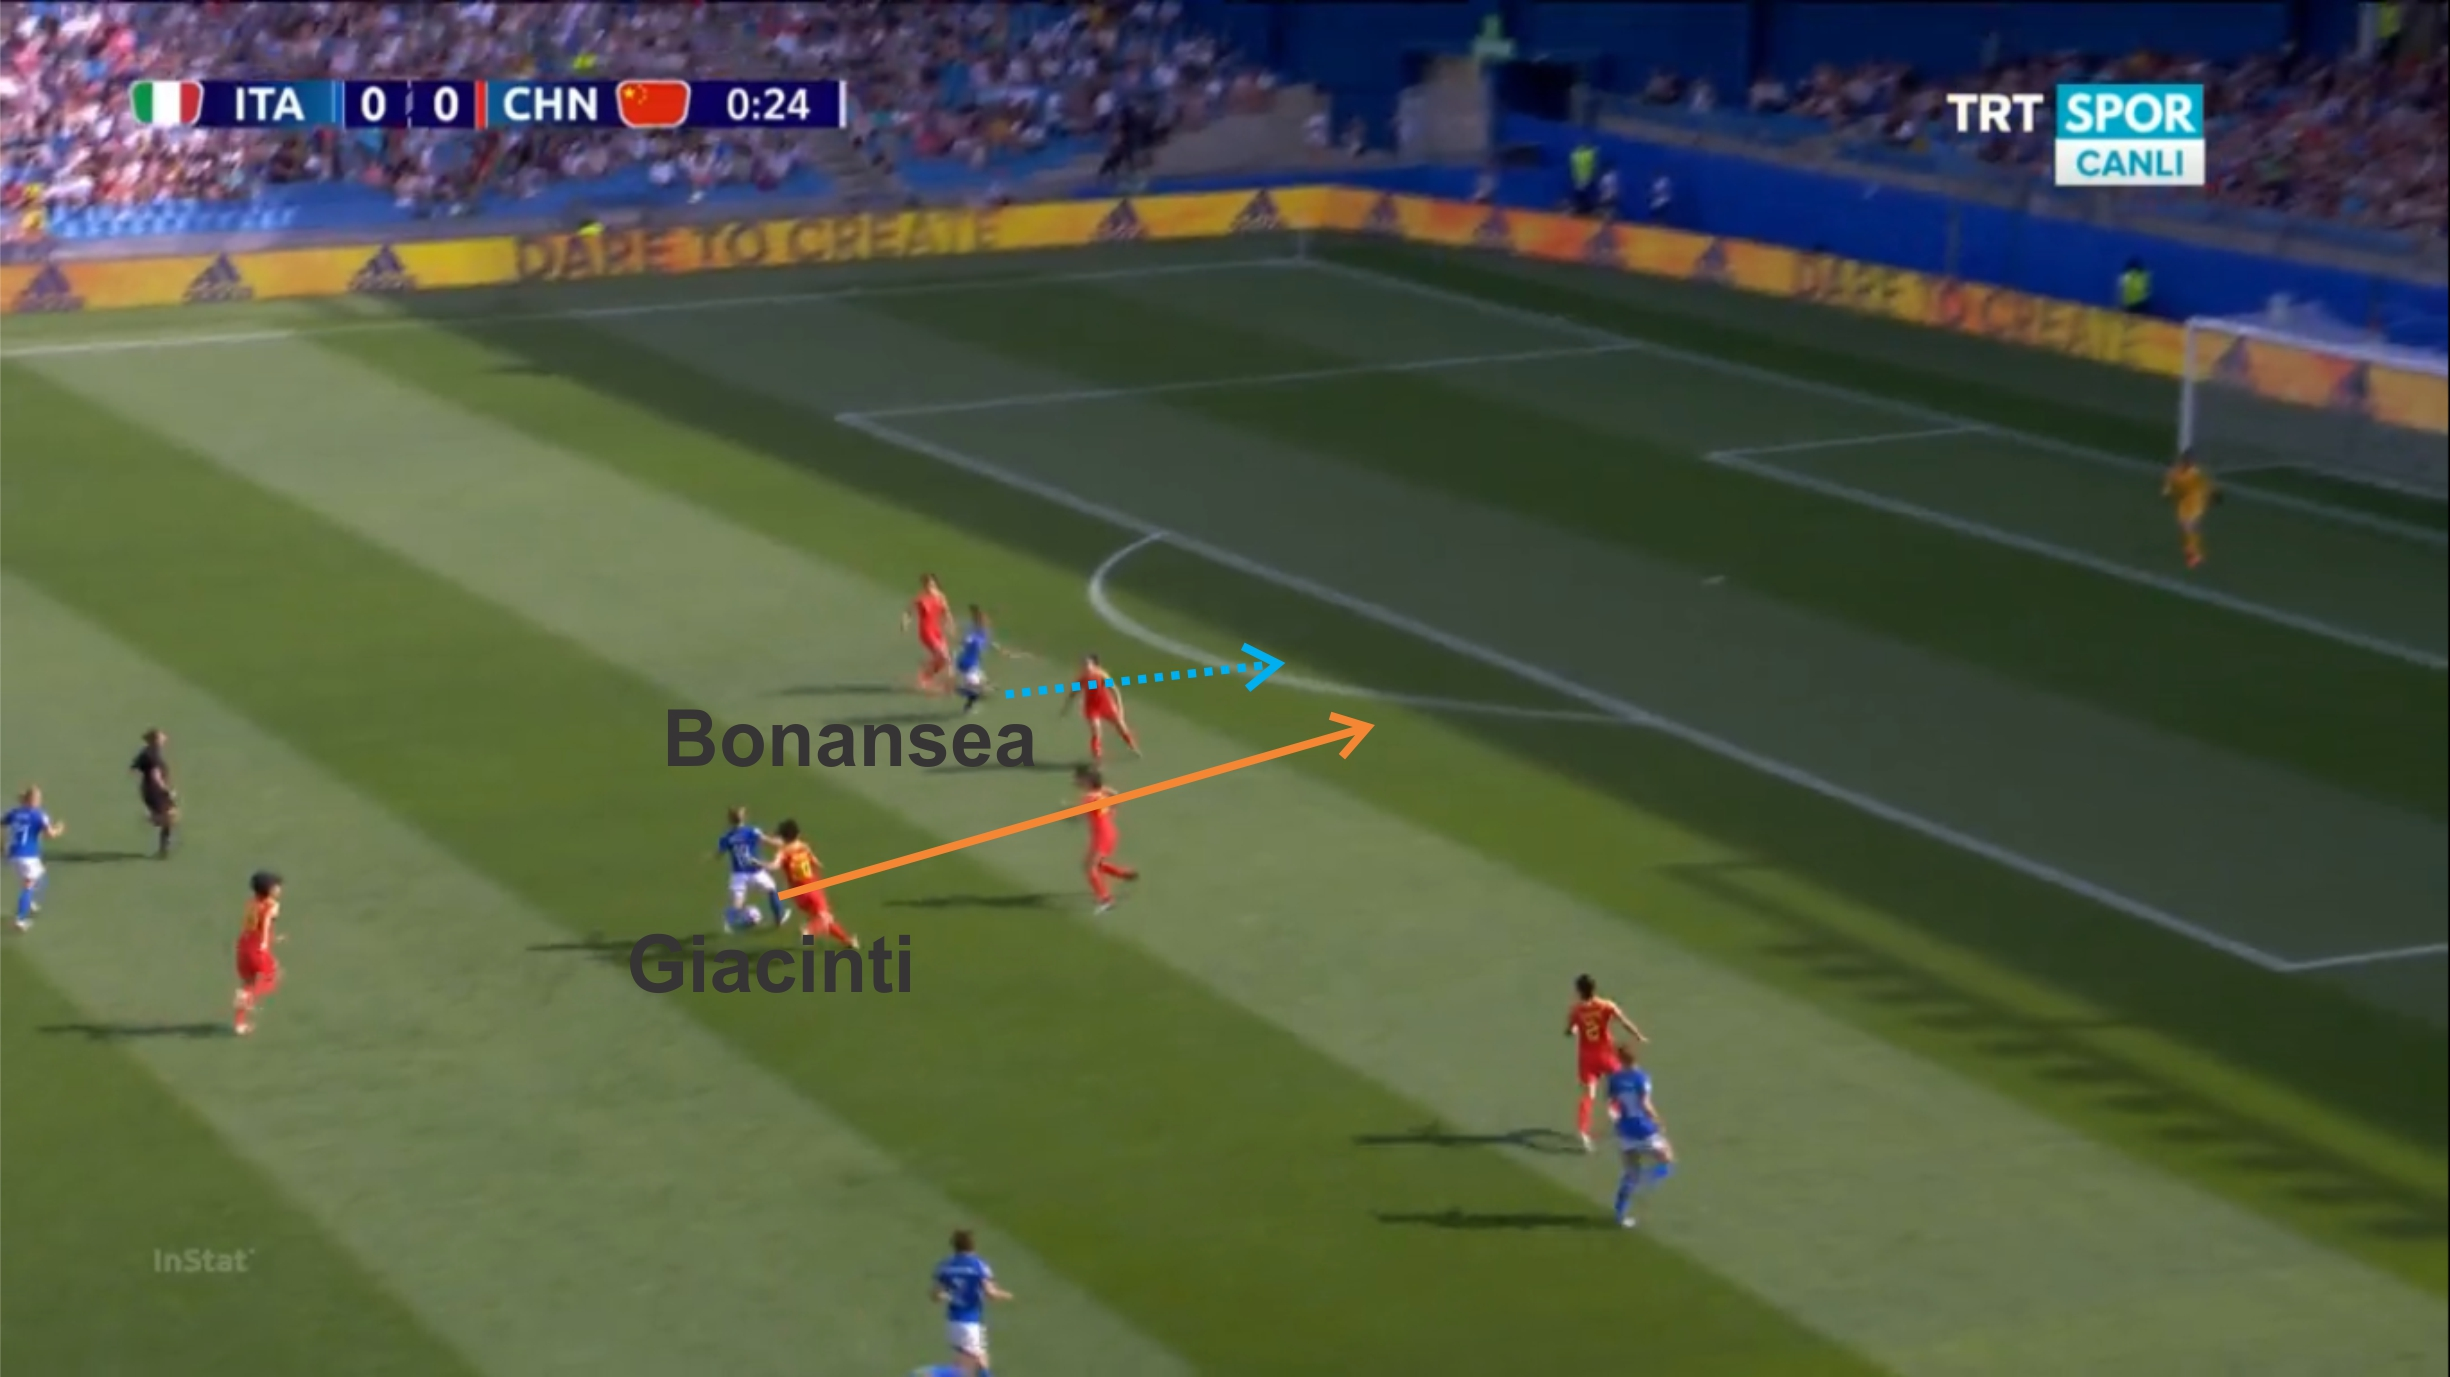 FIFA Women's World Cup 2019 Tactical Preview: Italy vs Netherlands